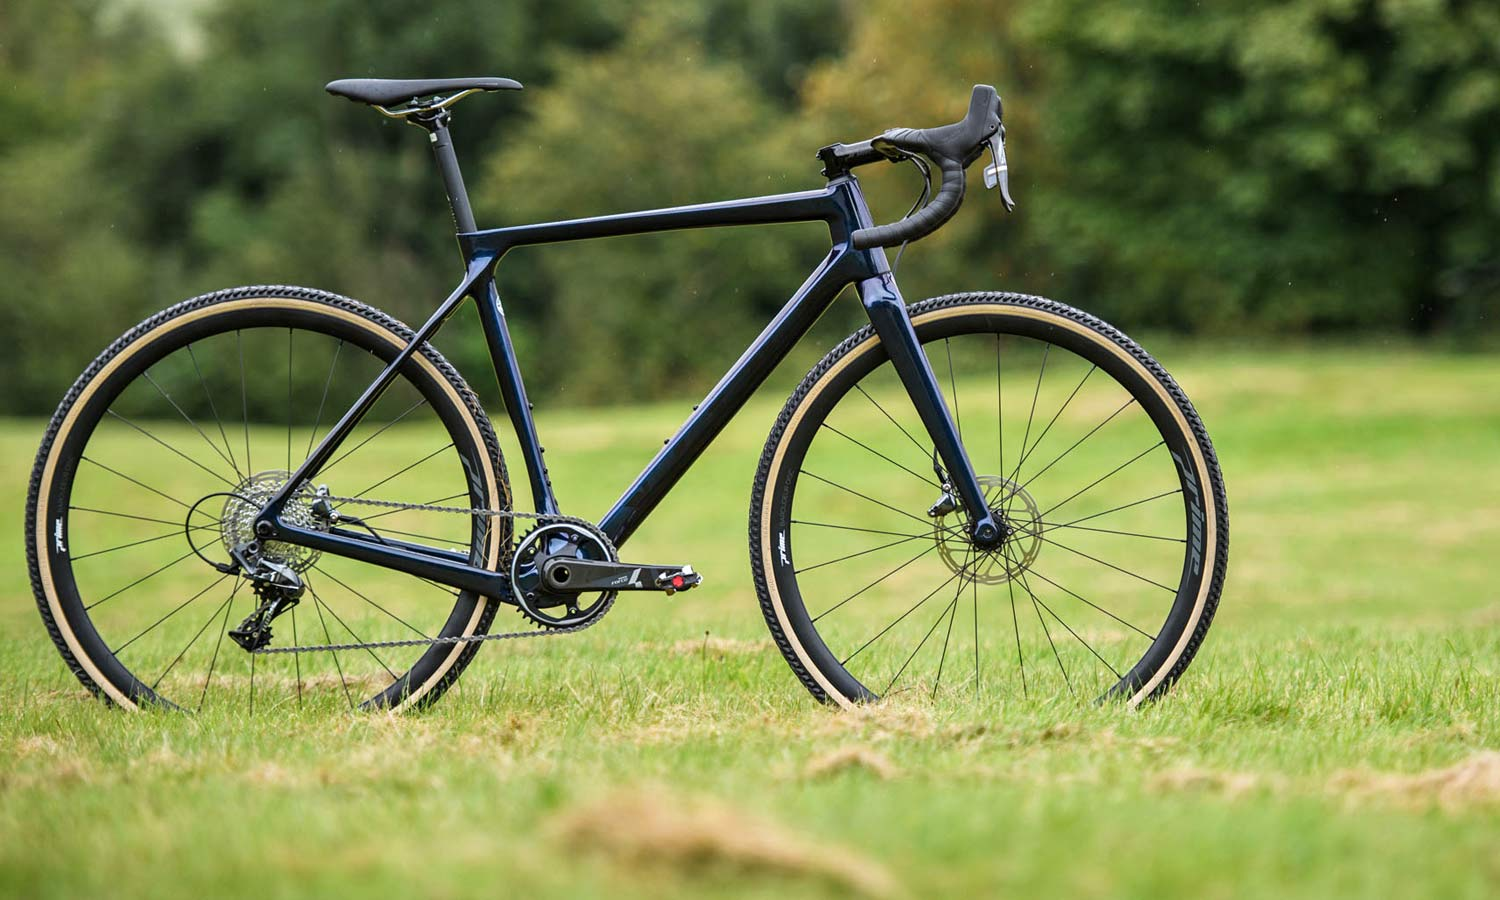 2021 Vitus Energie EVO cyclocross bike, race-ready lightweight affordable carbon CX bike, in a field